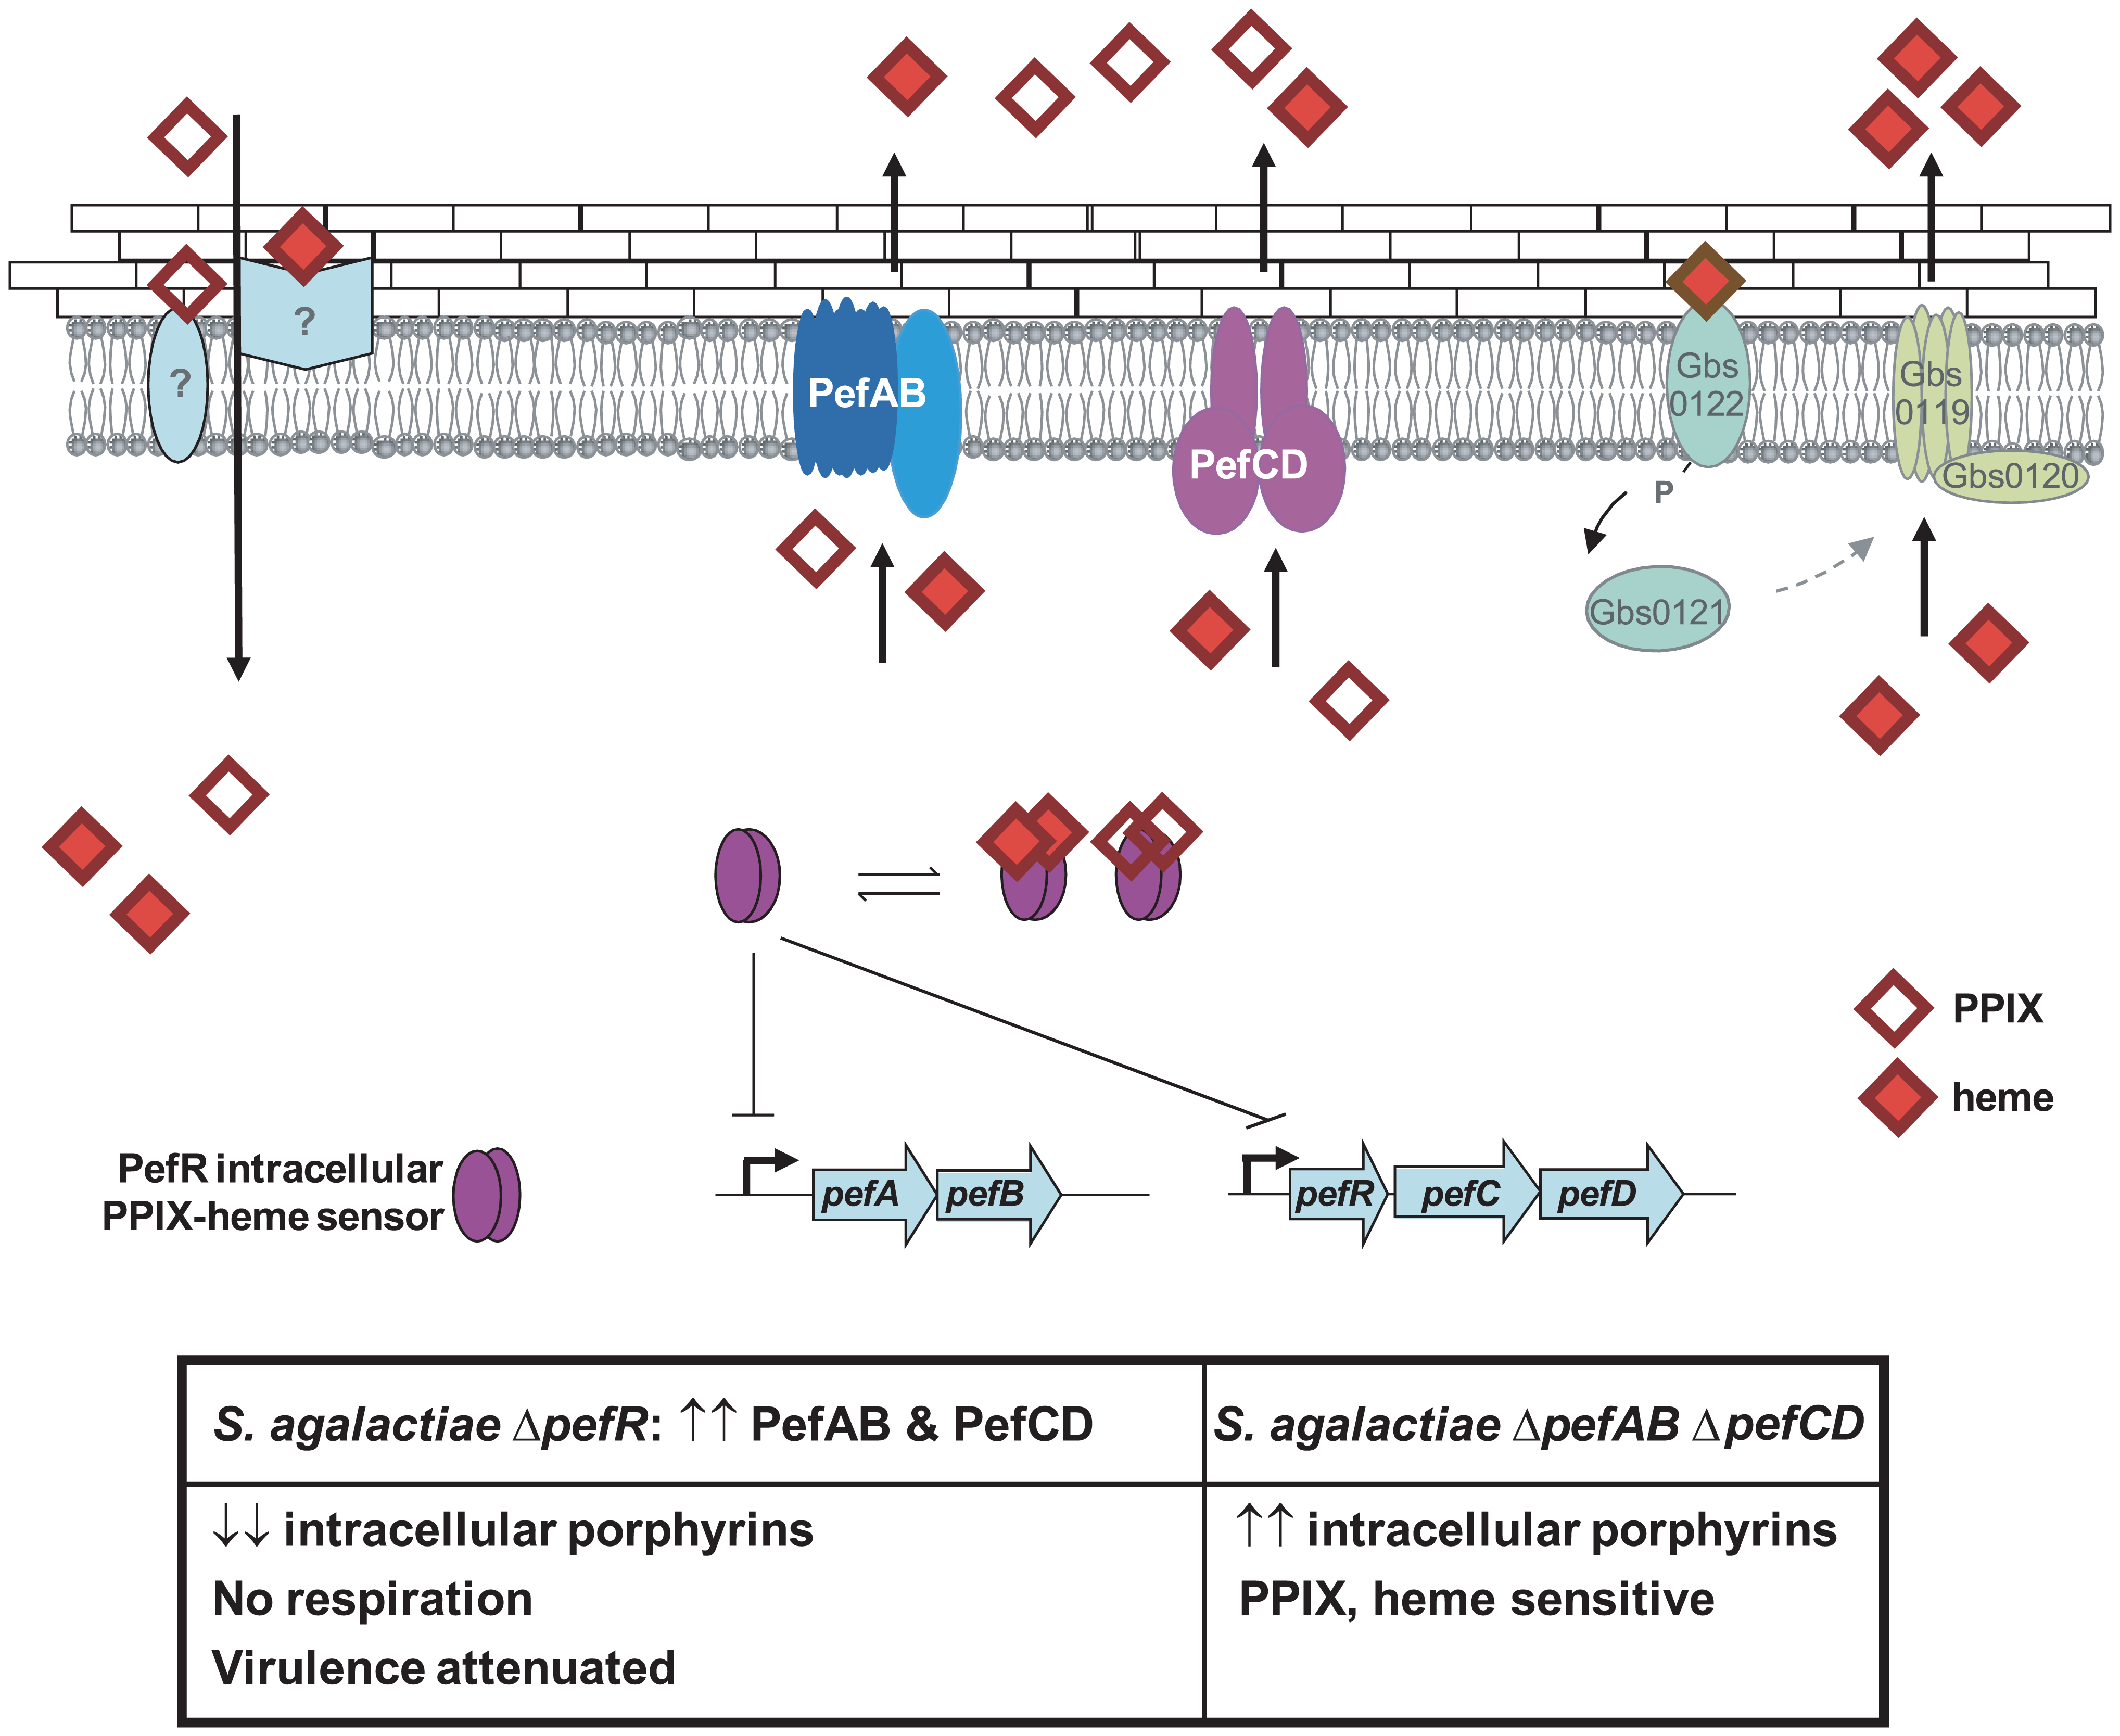 Model for <i>pefAB</i> and <i>pefCD</i> functions regulated by an intracellular sensor in <i>S. agalactiae</i>.